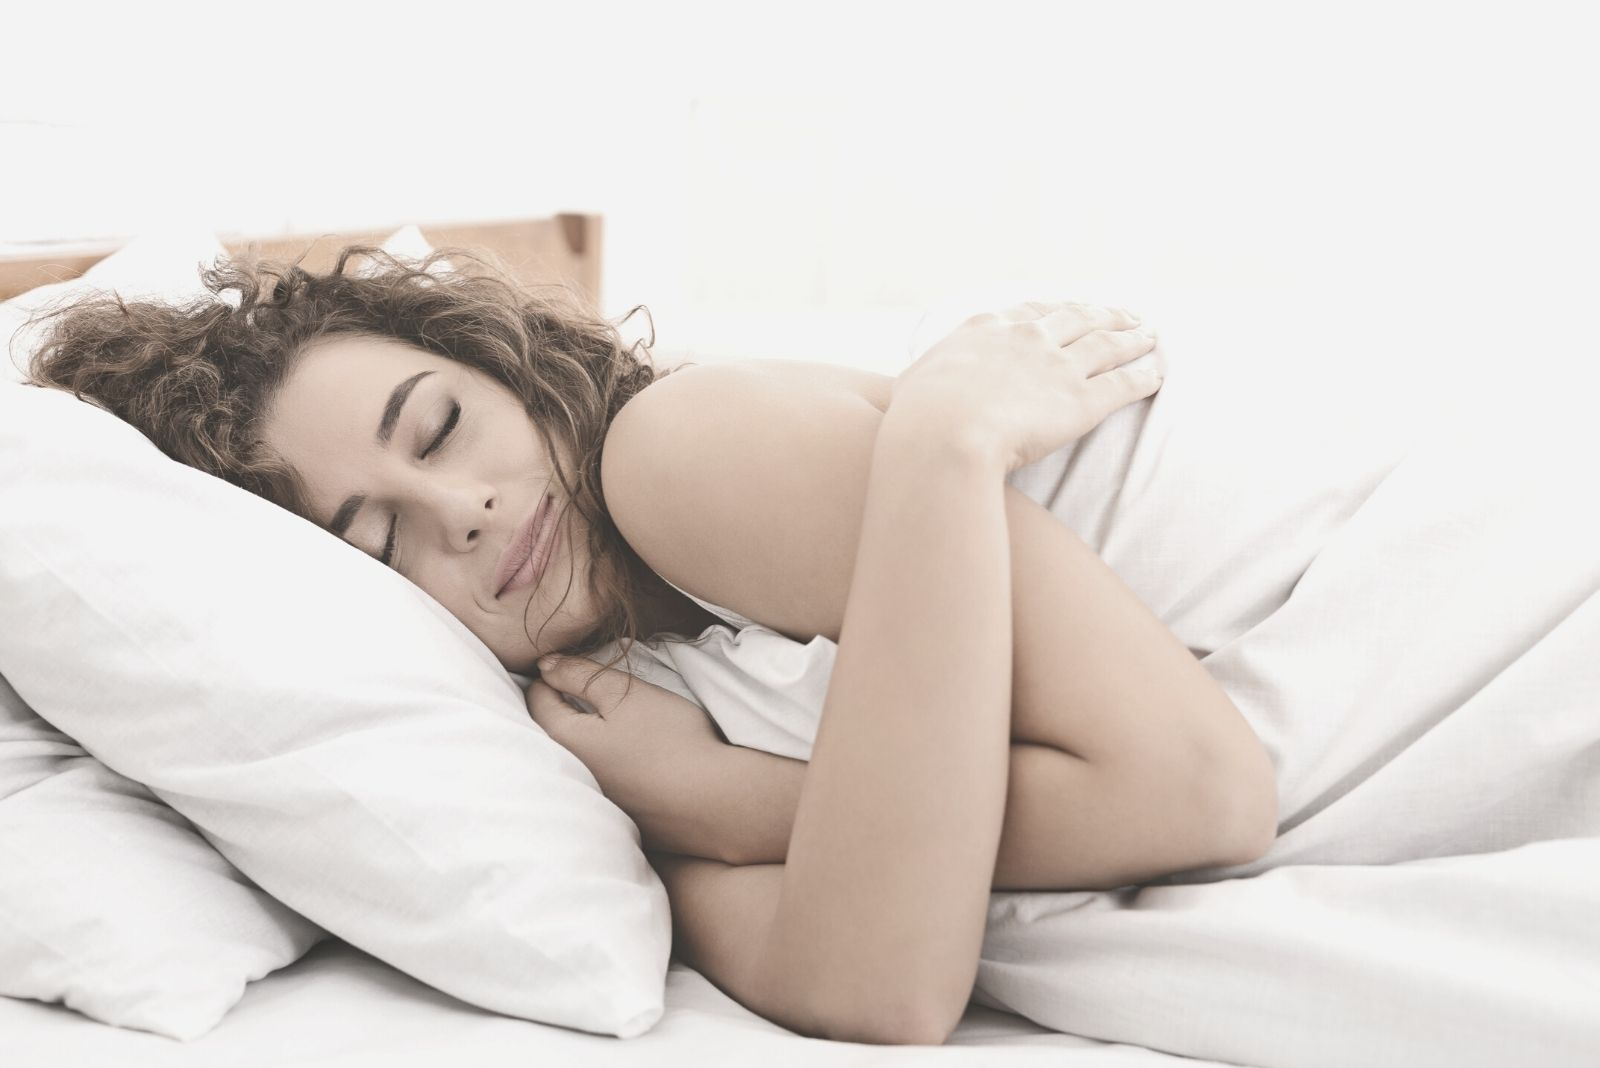 pretty young woman hugging herself to dream while lying down in bed